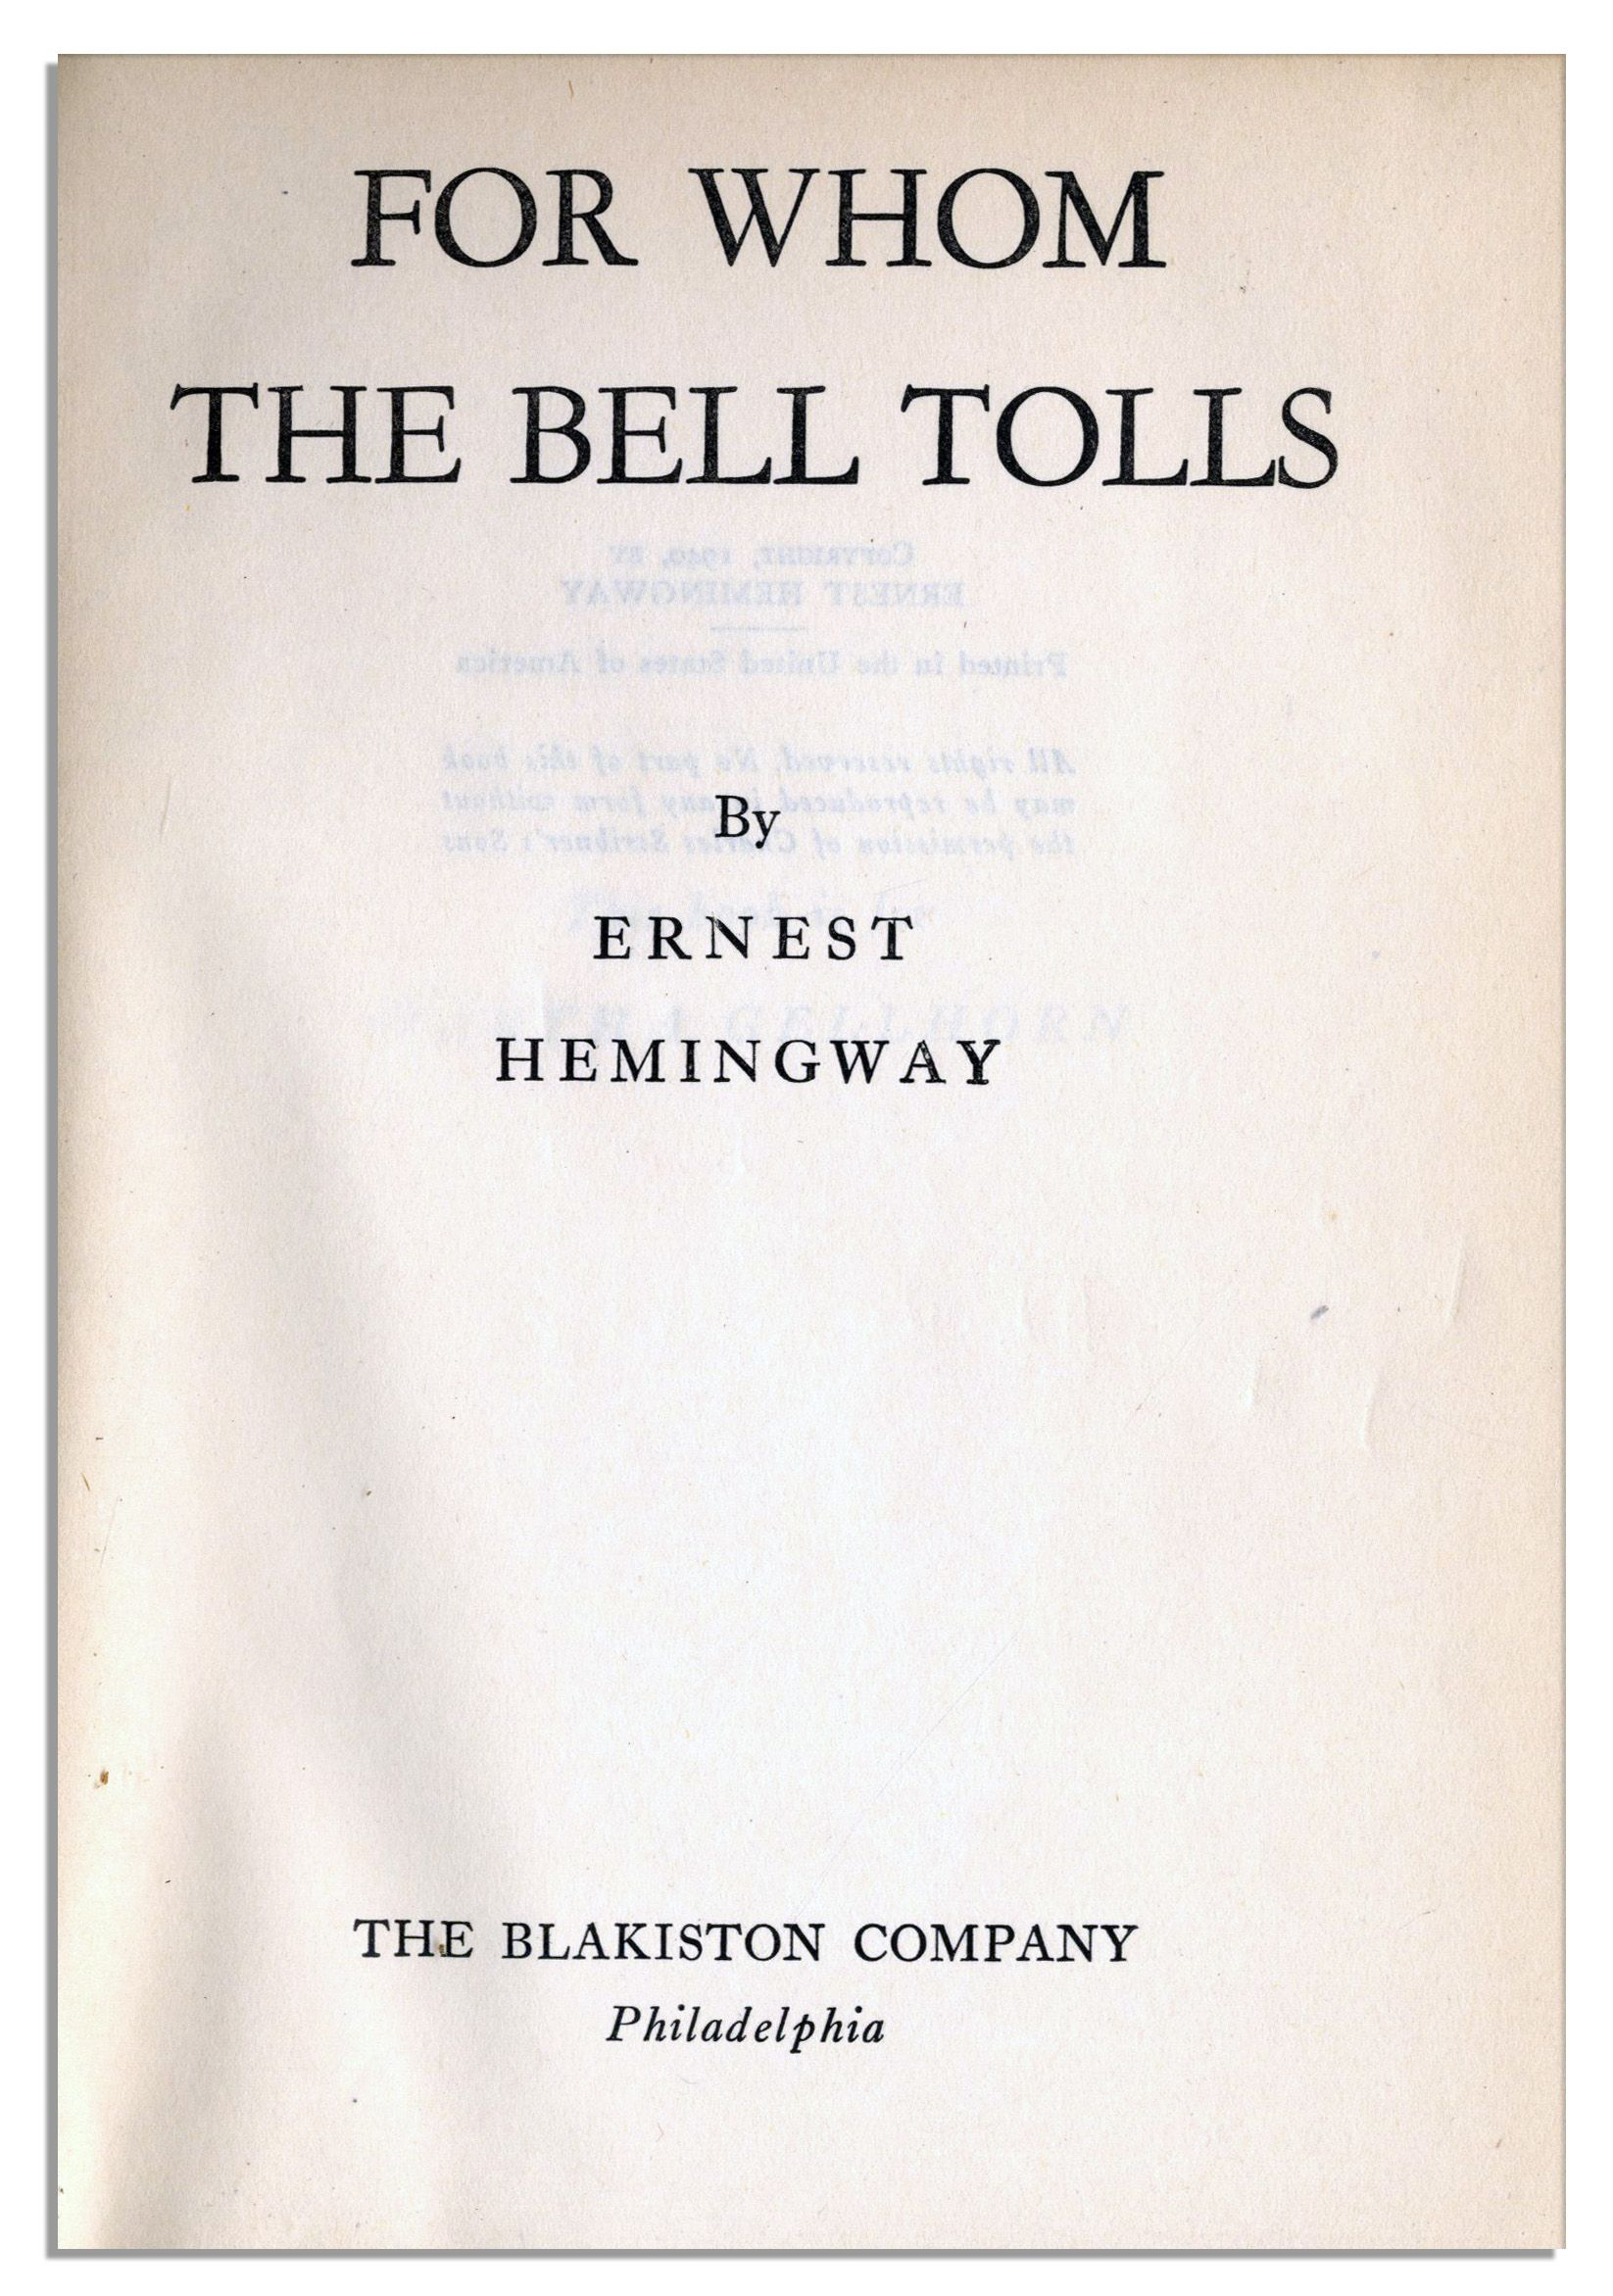 an experience of war in for whom the bell tolls by ernest hemingway First published in 1940, ernest hemingway's renowned classic for whom the bell tolls is a book with important themes that still hold relevance today the book is semi-biographical as hemingway took inspiration for some of the characters and events from his own experiences in the spanish civil war.